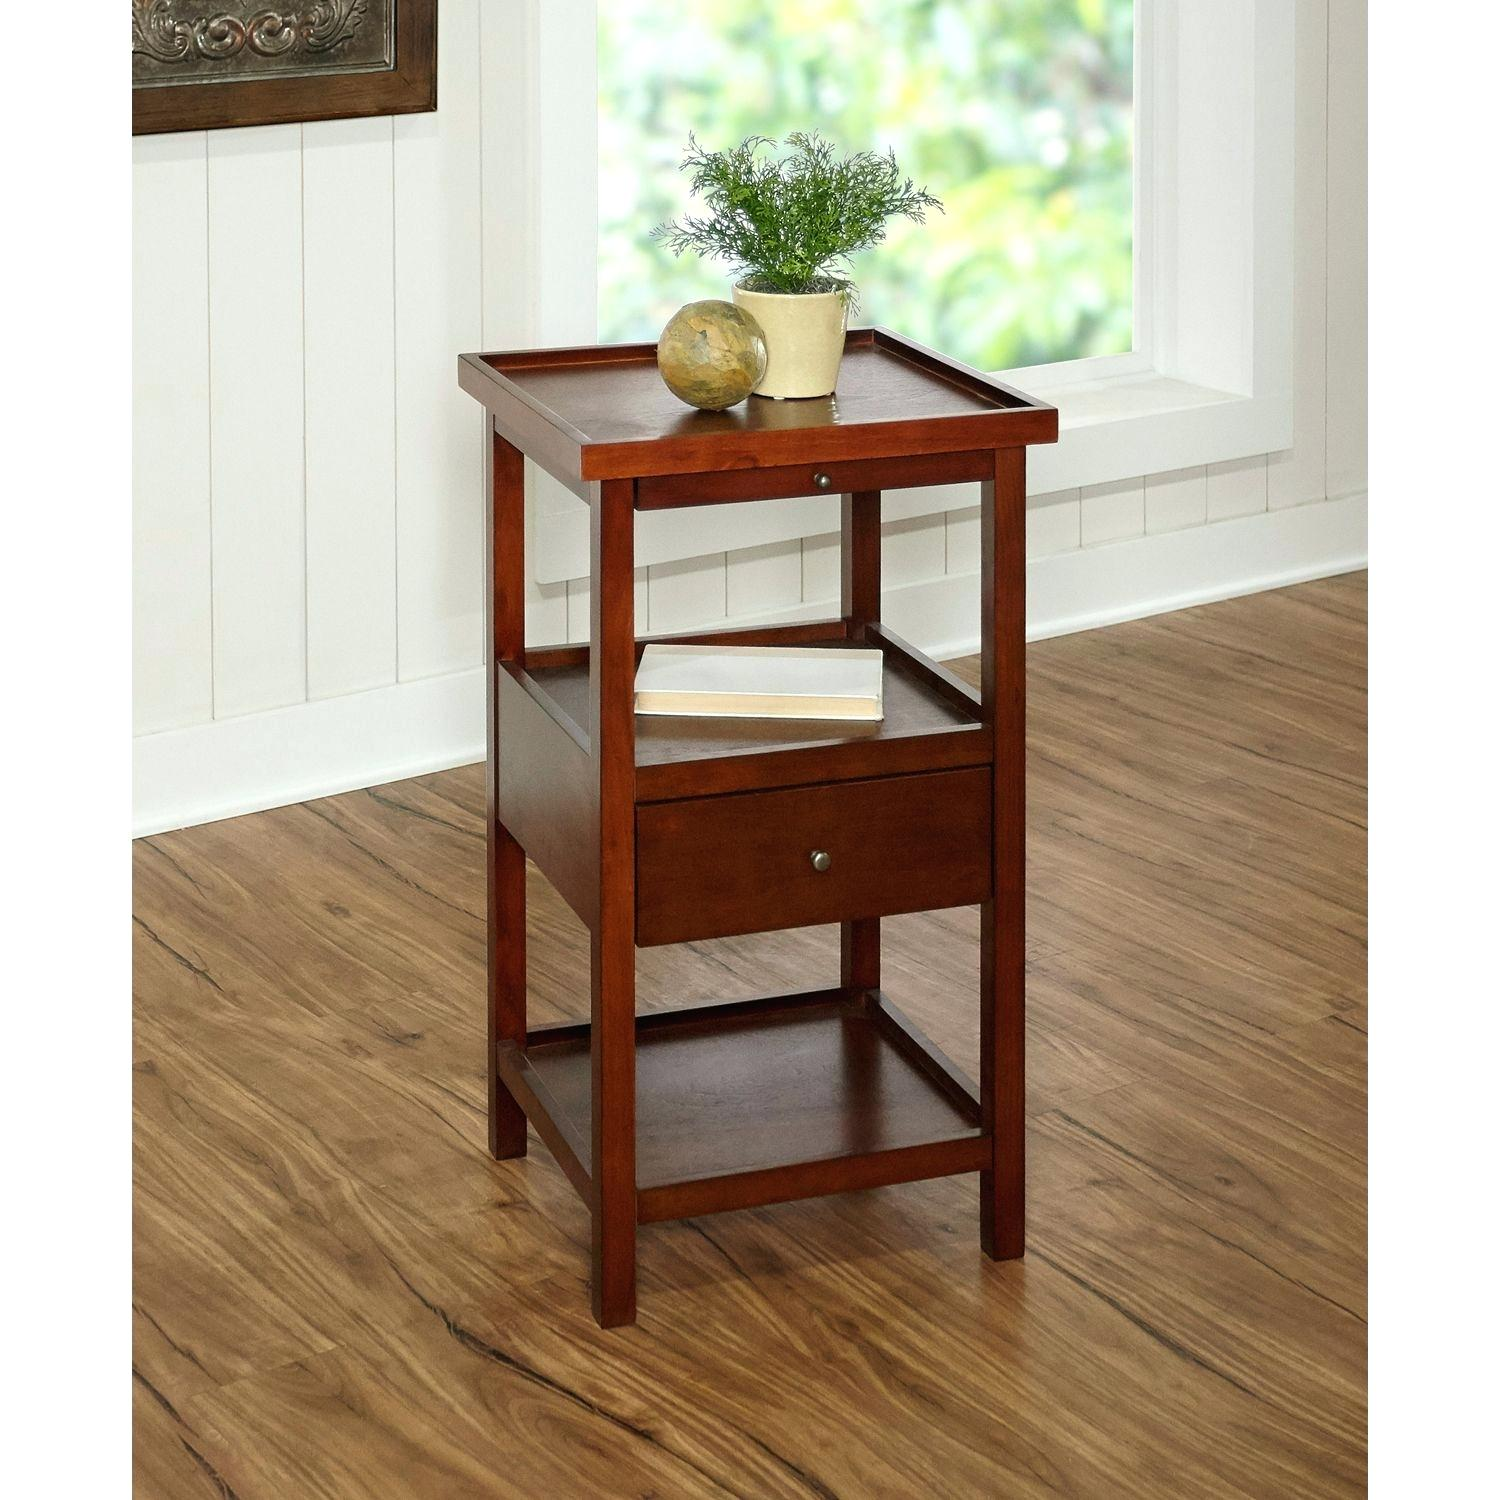 cherry accent furniture table and antique white with shelf pier imports mosaic garden bistro set touch bedside lamps end rustic cantilever umbrella outdoor iron coffee meyda